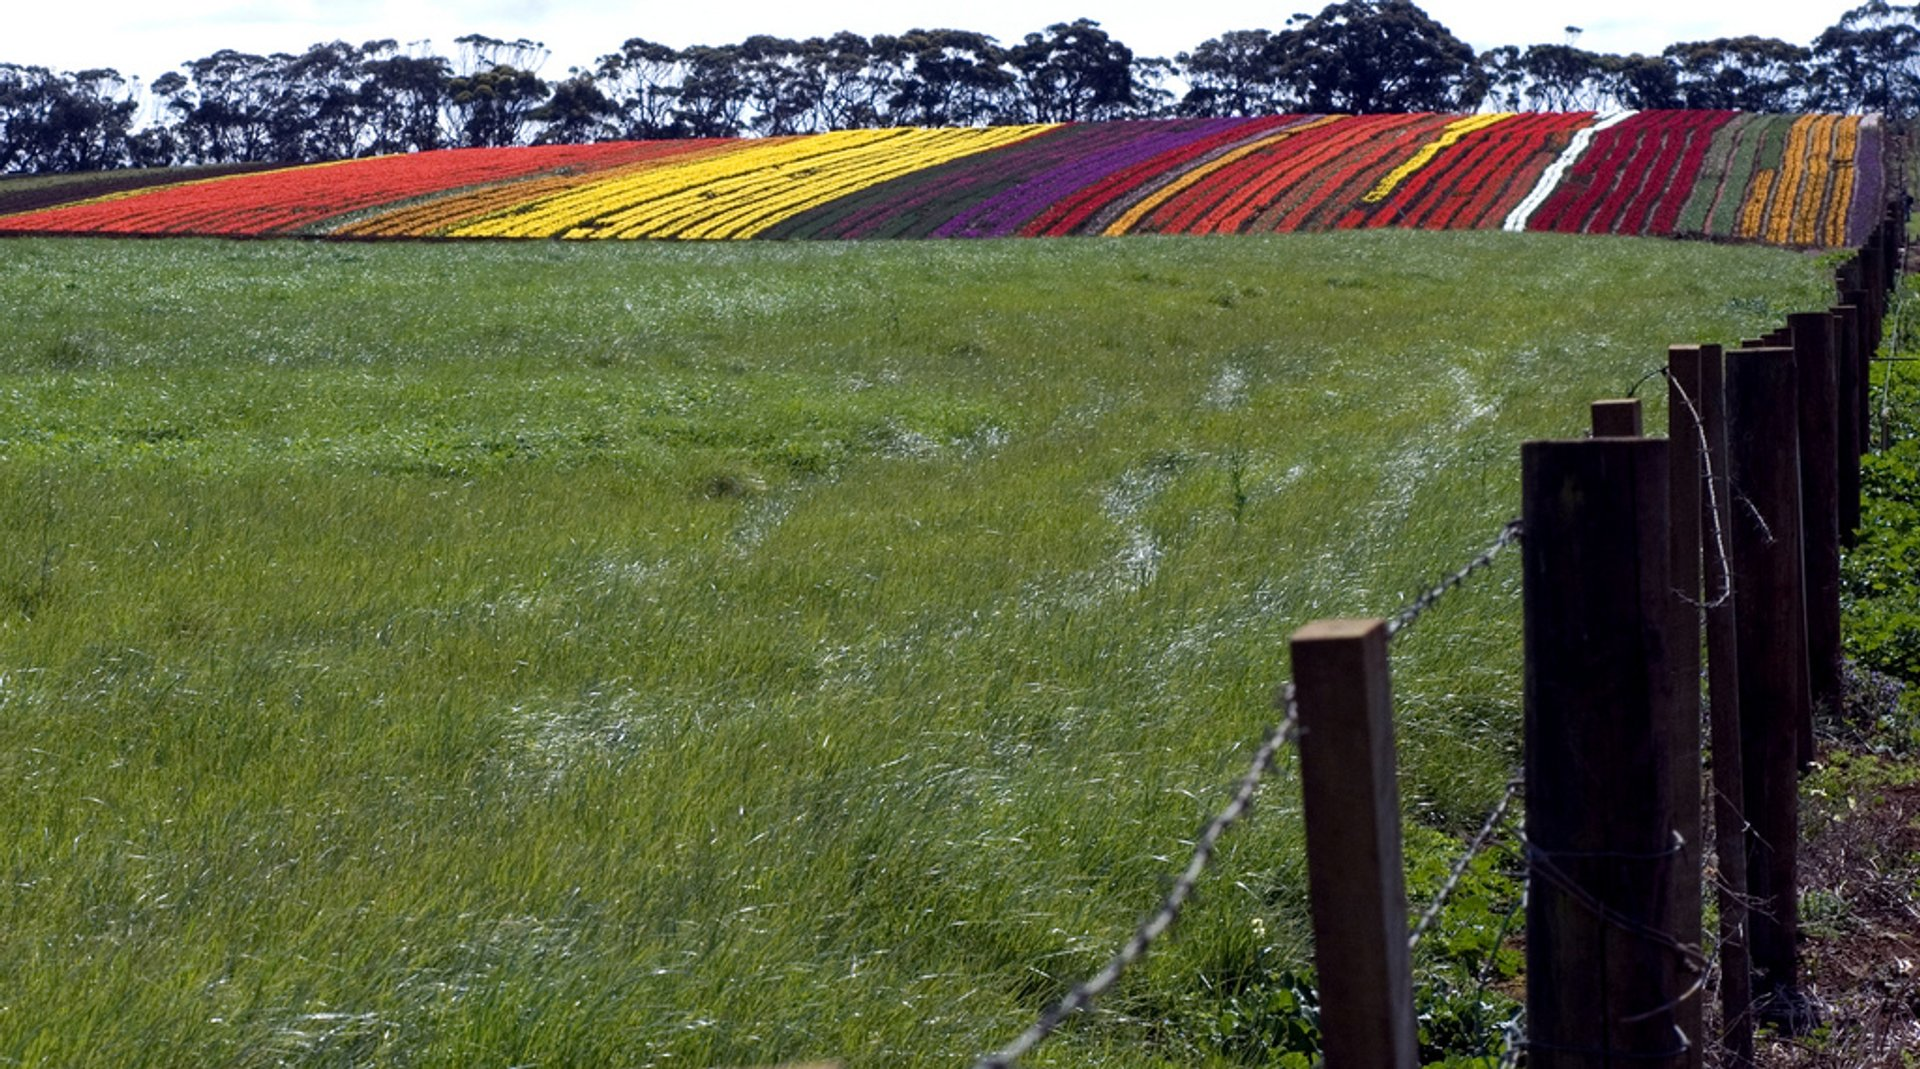 Best time for Blooming Tulips in Tasmania 2020